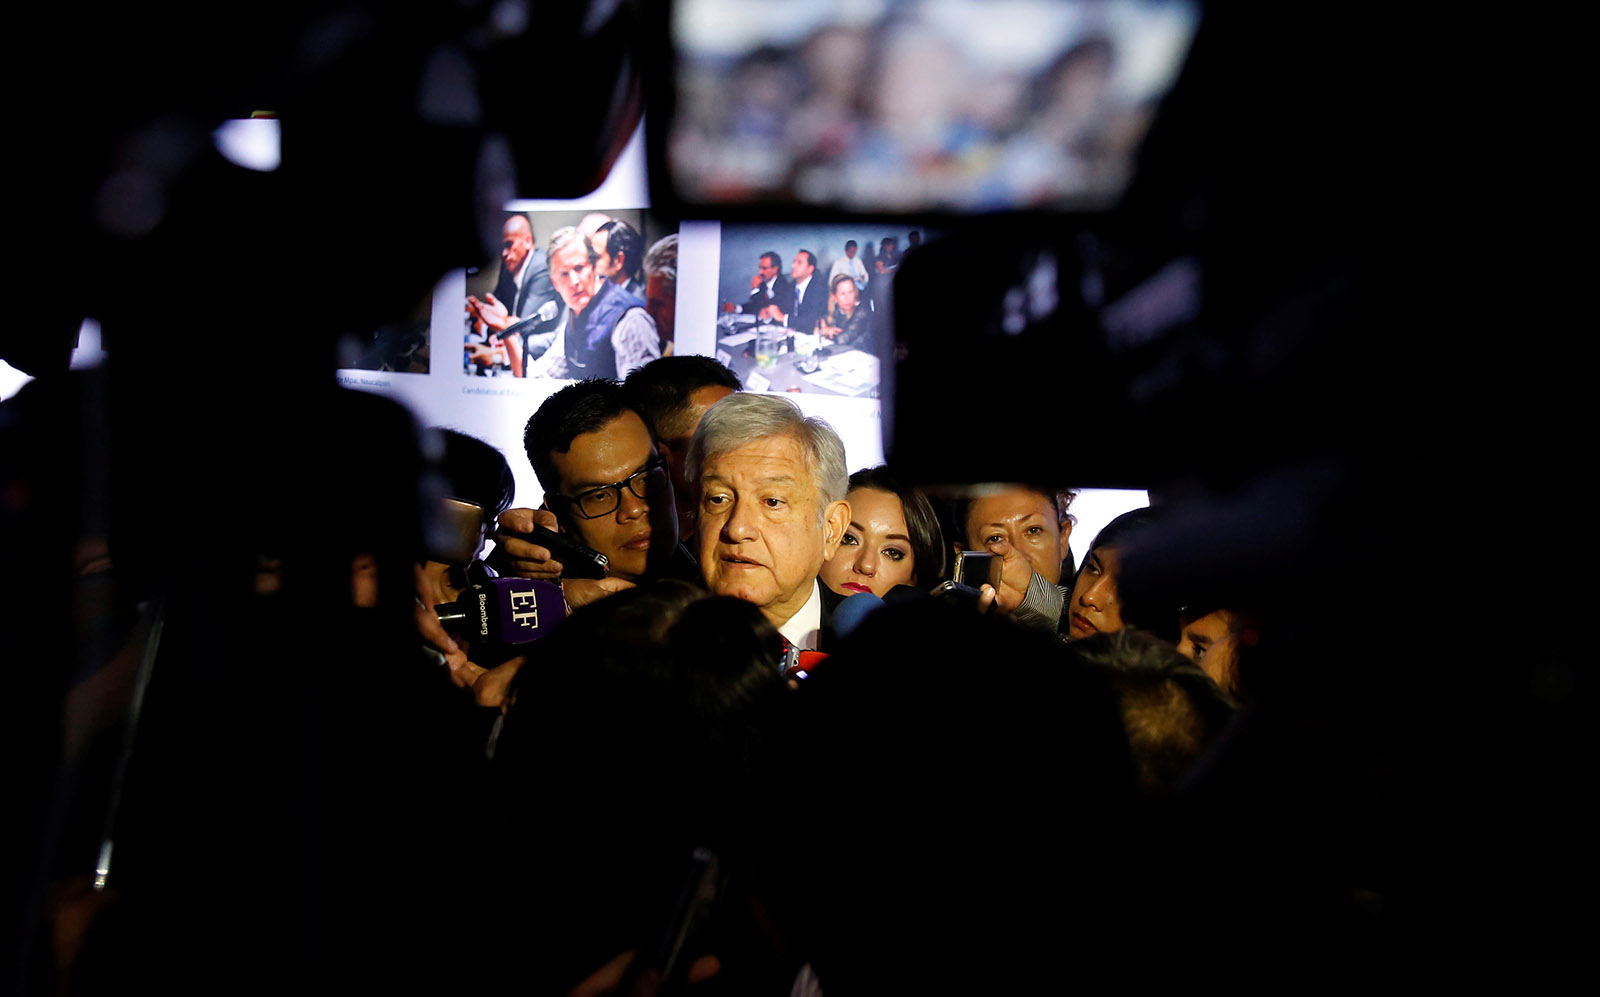 Presidential candidate Andrés Manuel López Obrador speaking to the press in Mexico City, on March 7, 2018